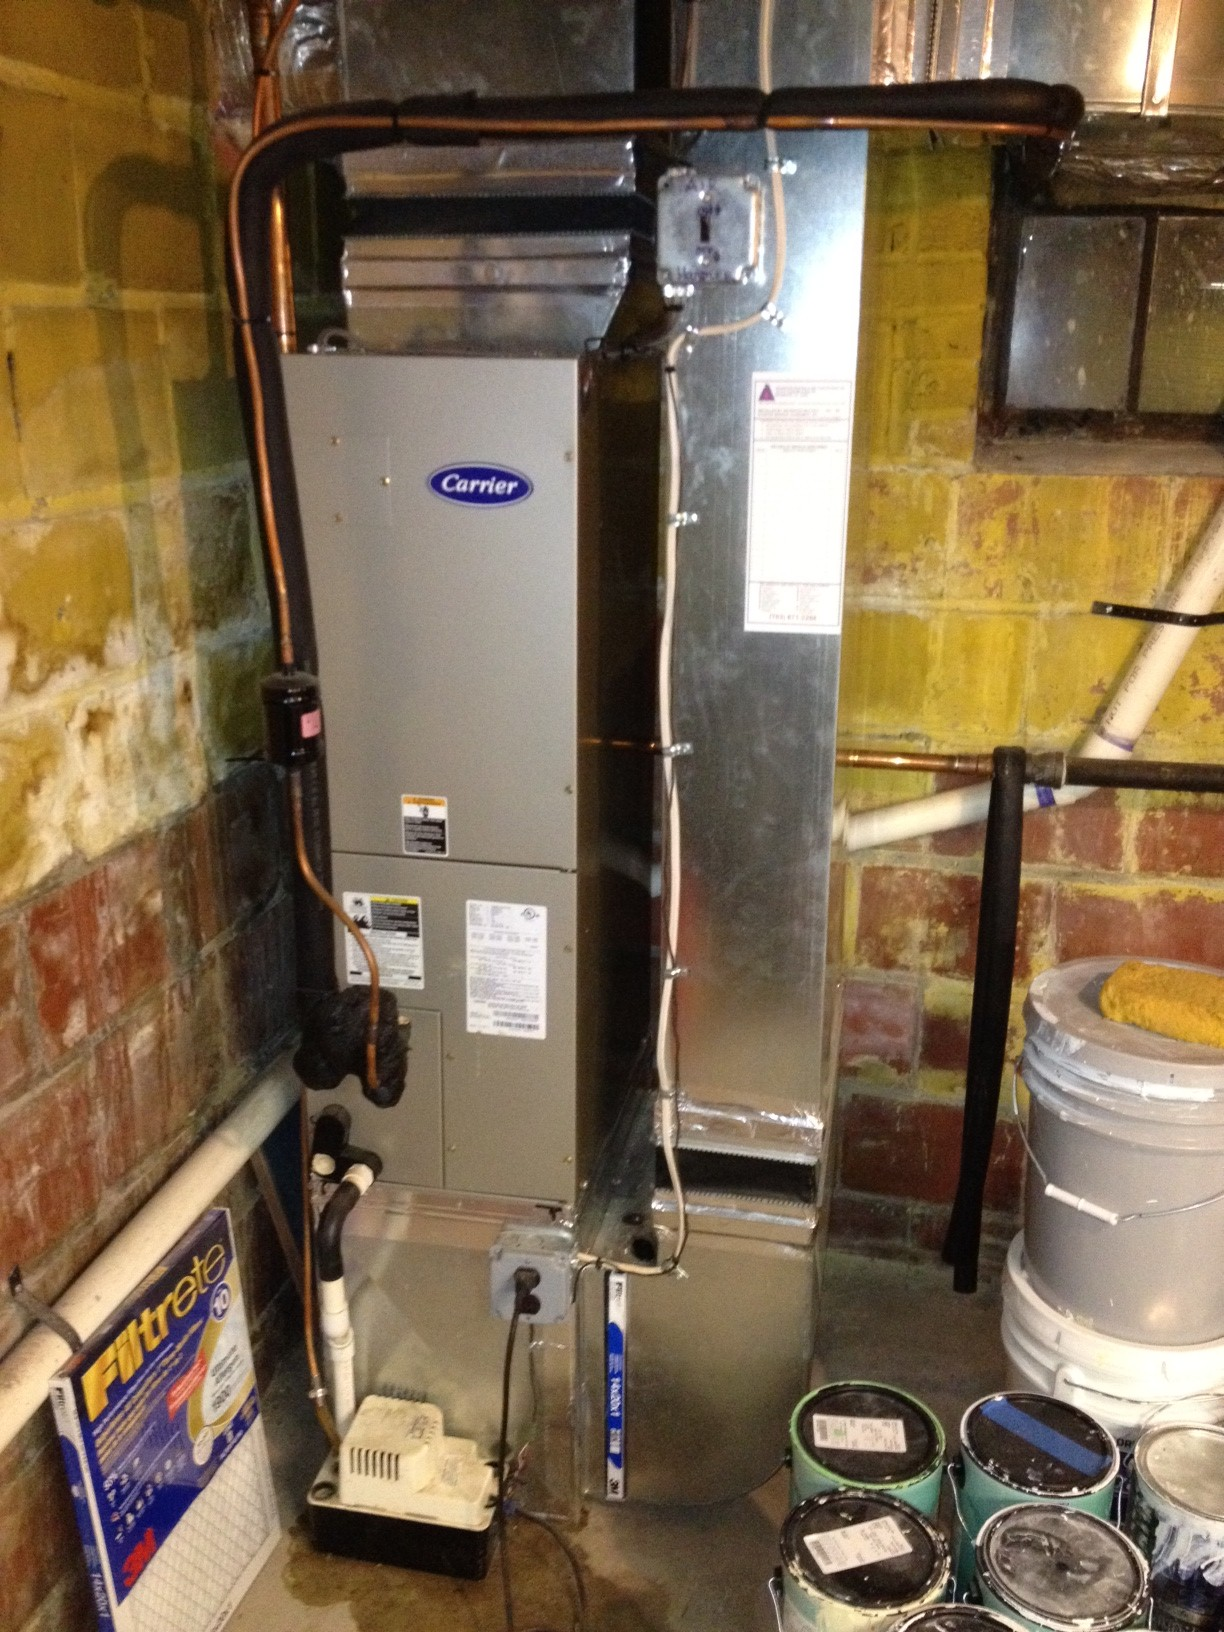 #A88623 I Have A Carrier FB4BNF024 Air Handler And The AC Will Not Recommended 7217 What Is A Air Handler pics with 1224x1632 px on helpvideos.info - Air Conditioners, Air Coolers and more